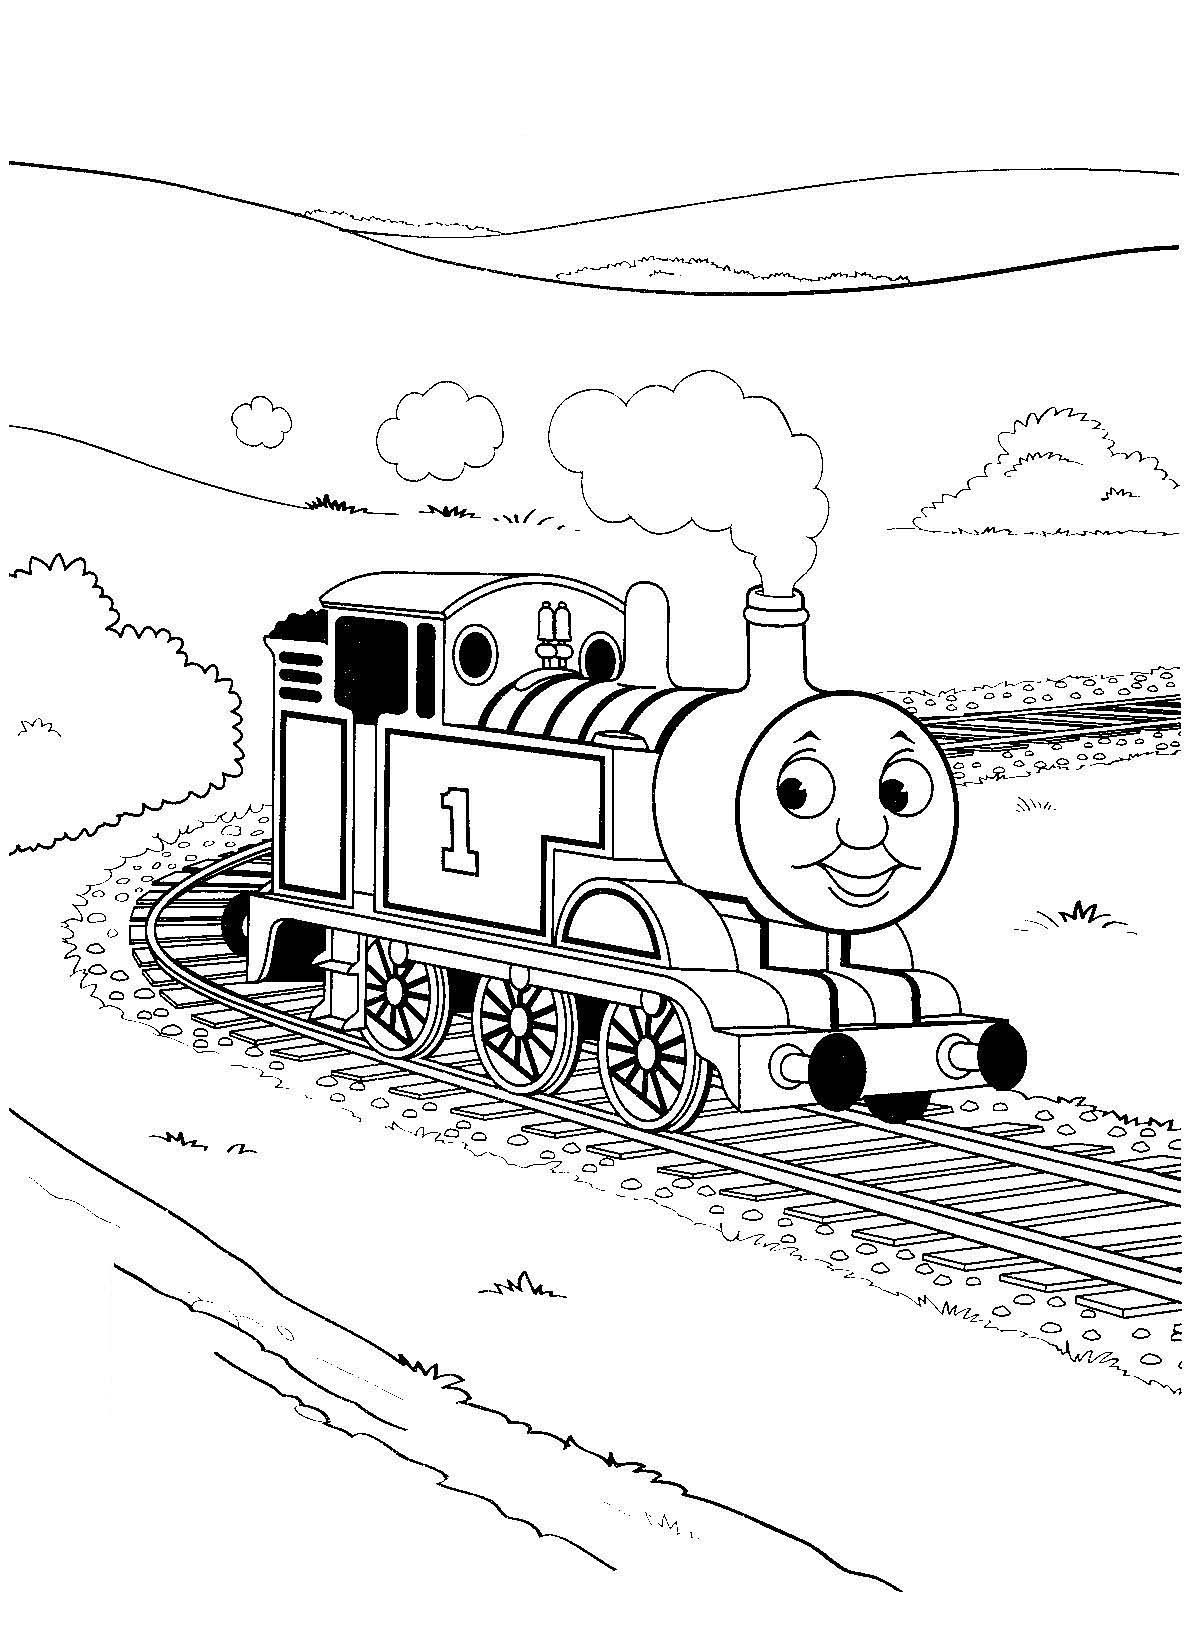 Thomas the tank engine coloring pages to download and ...